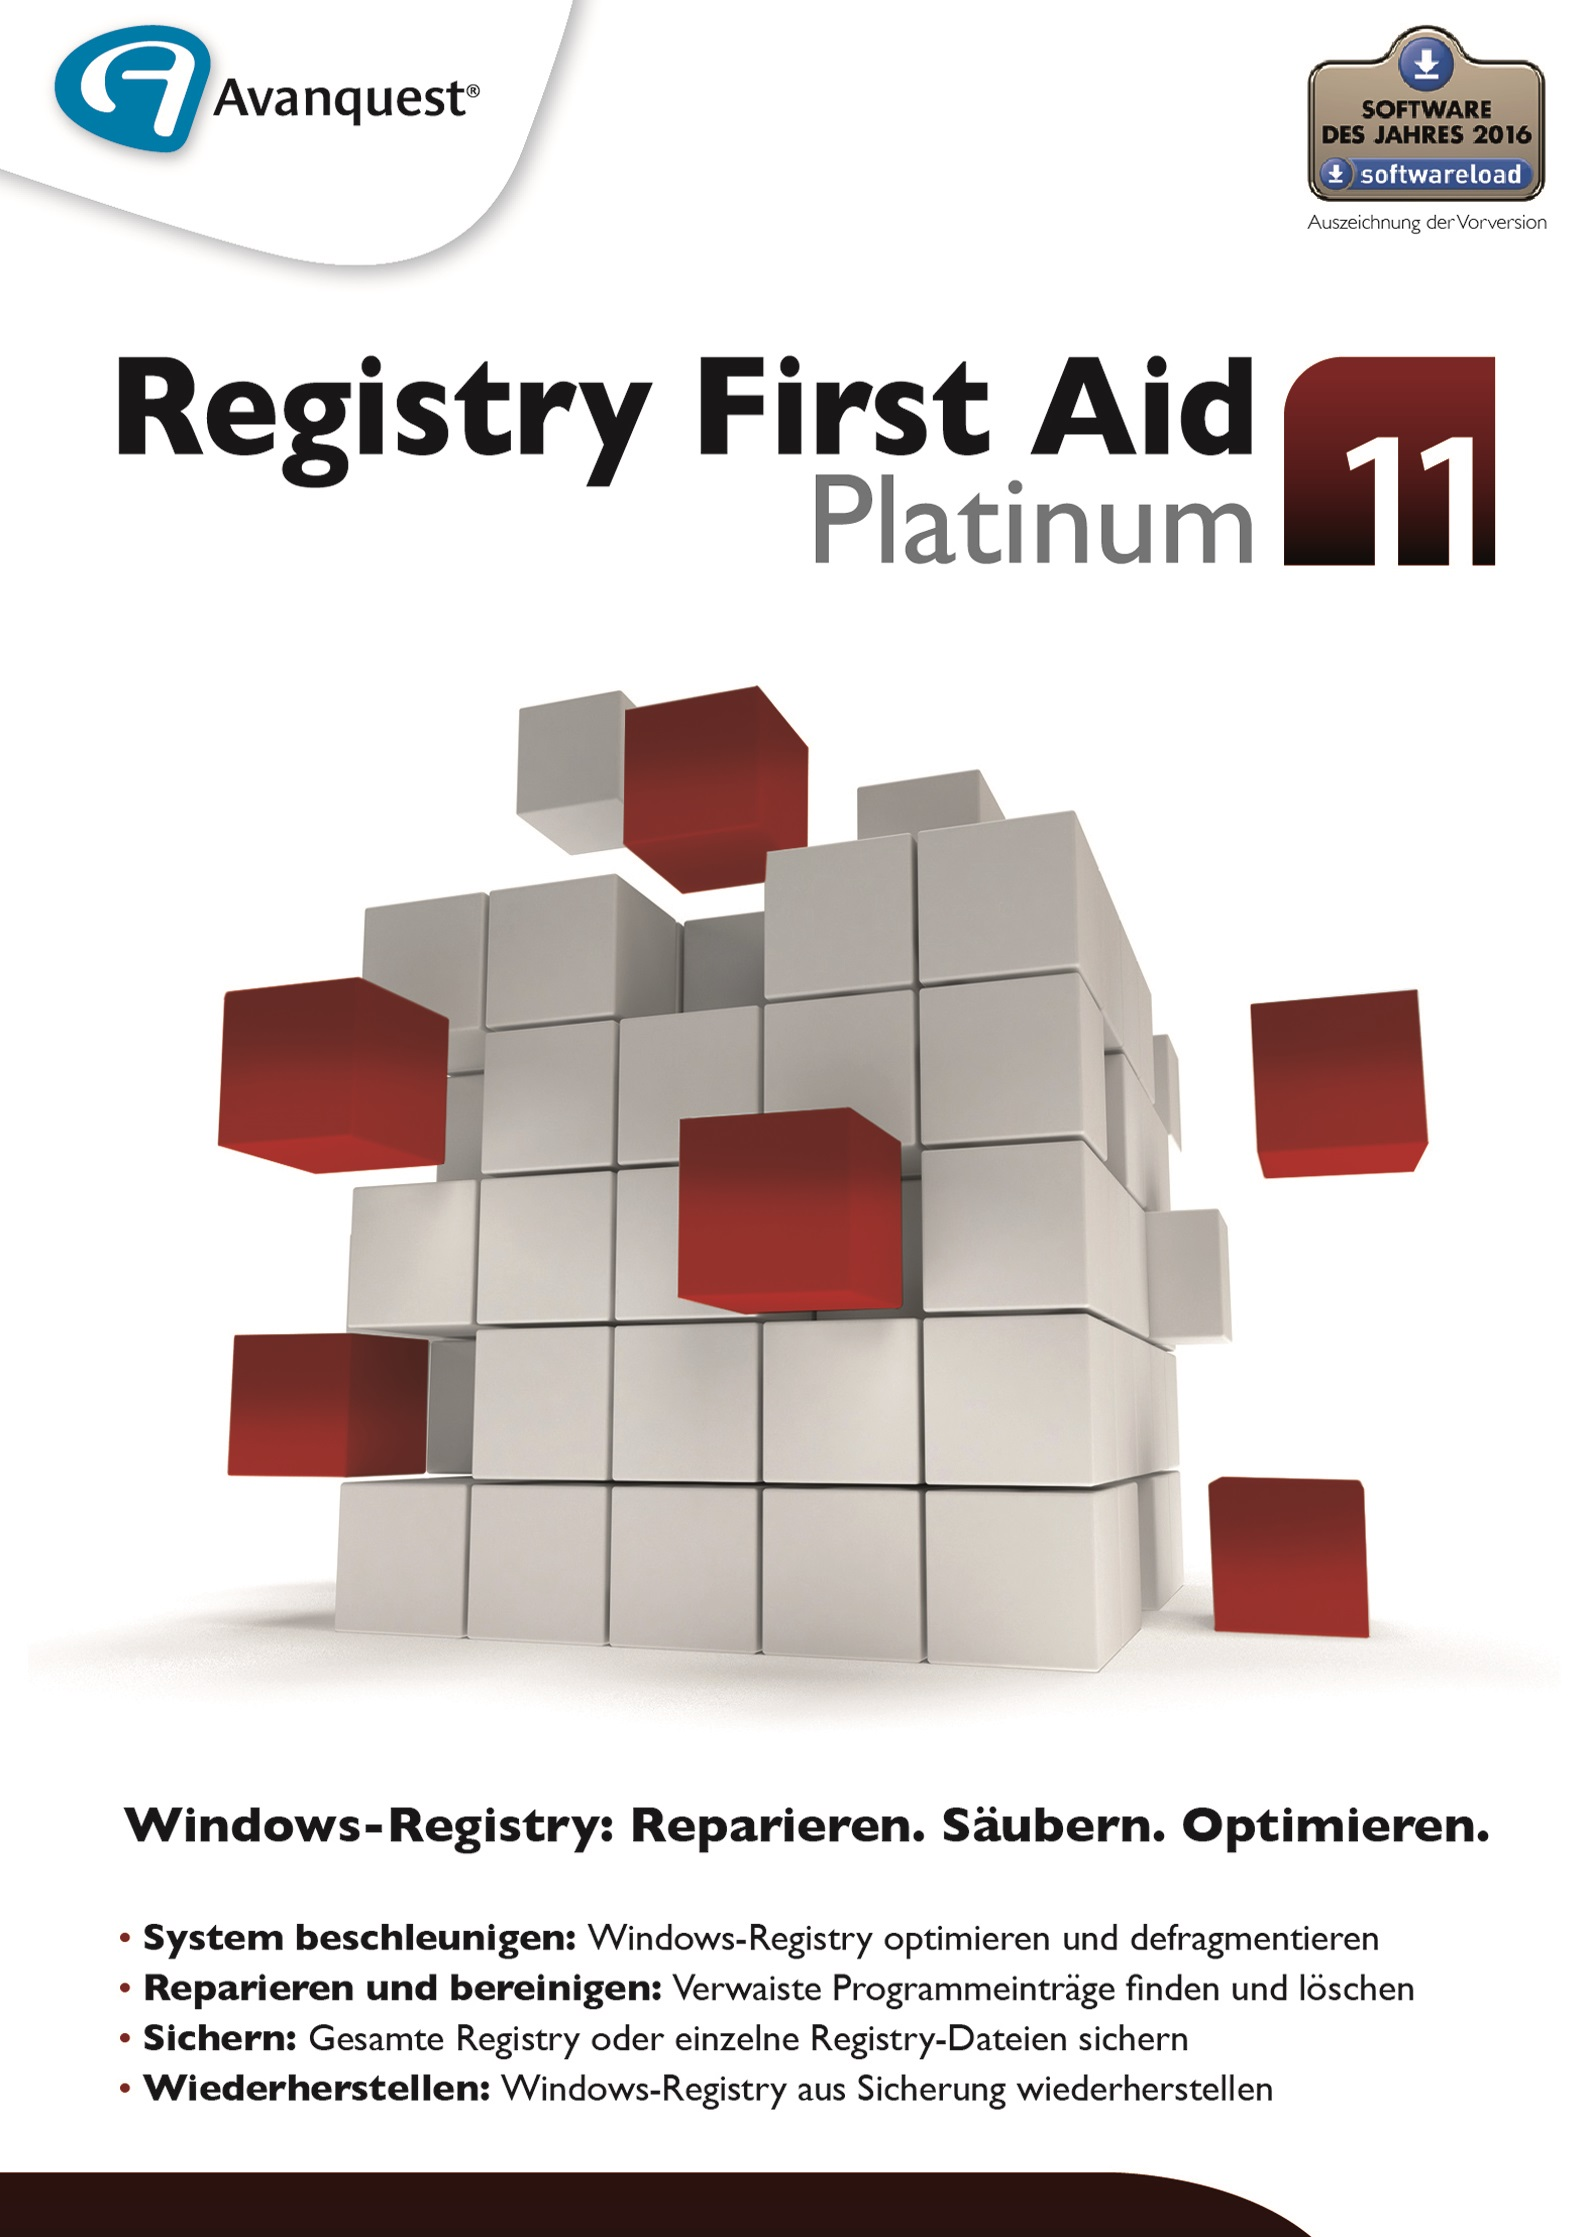 Registry First Aid 11 Platinum - Reparieren, Säubern und Optimieren der Windows-Registry! Für Windows 10|8|7|Vista|XP [Download]